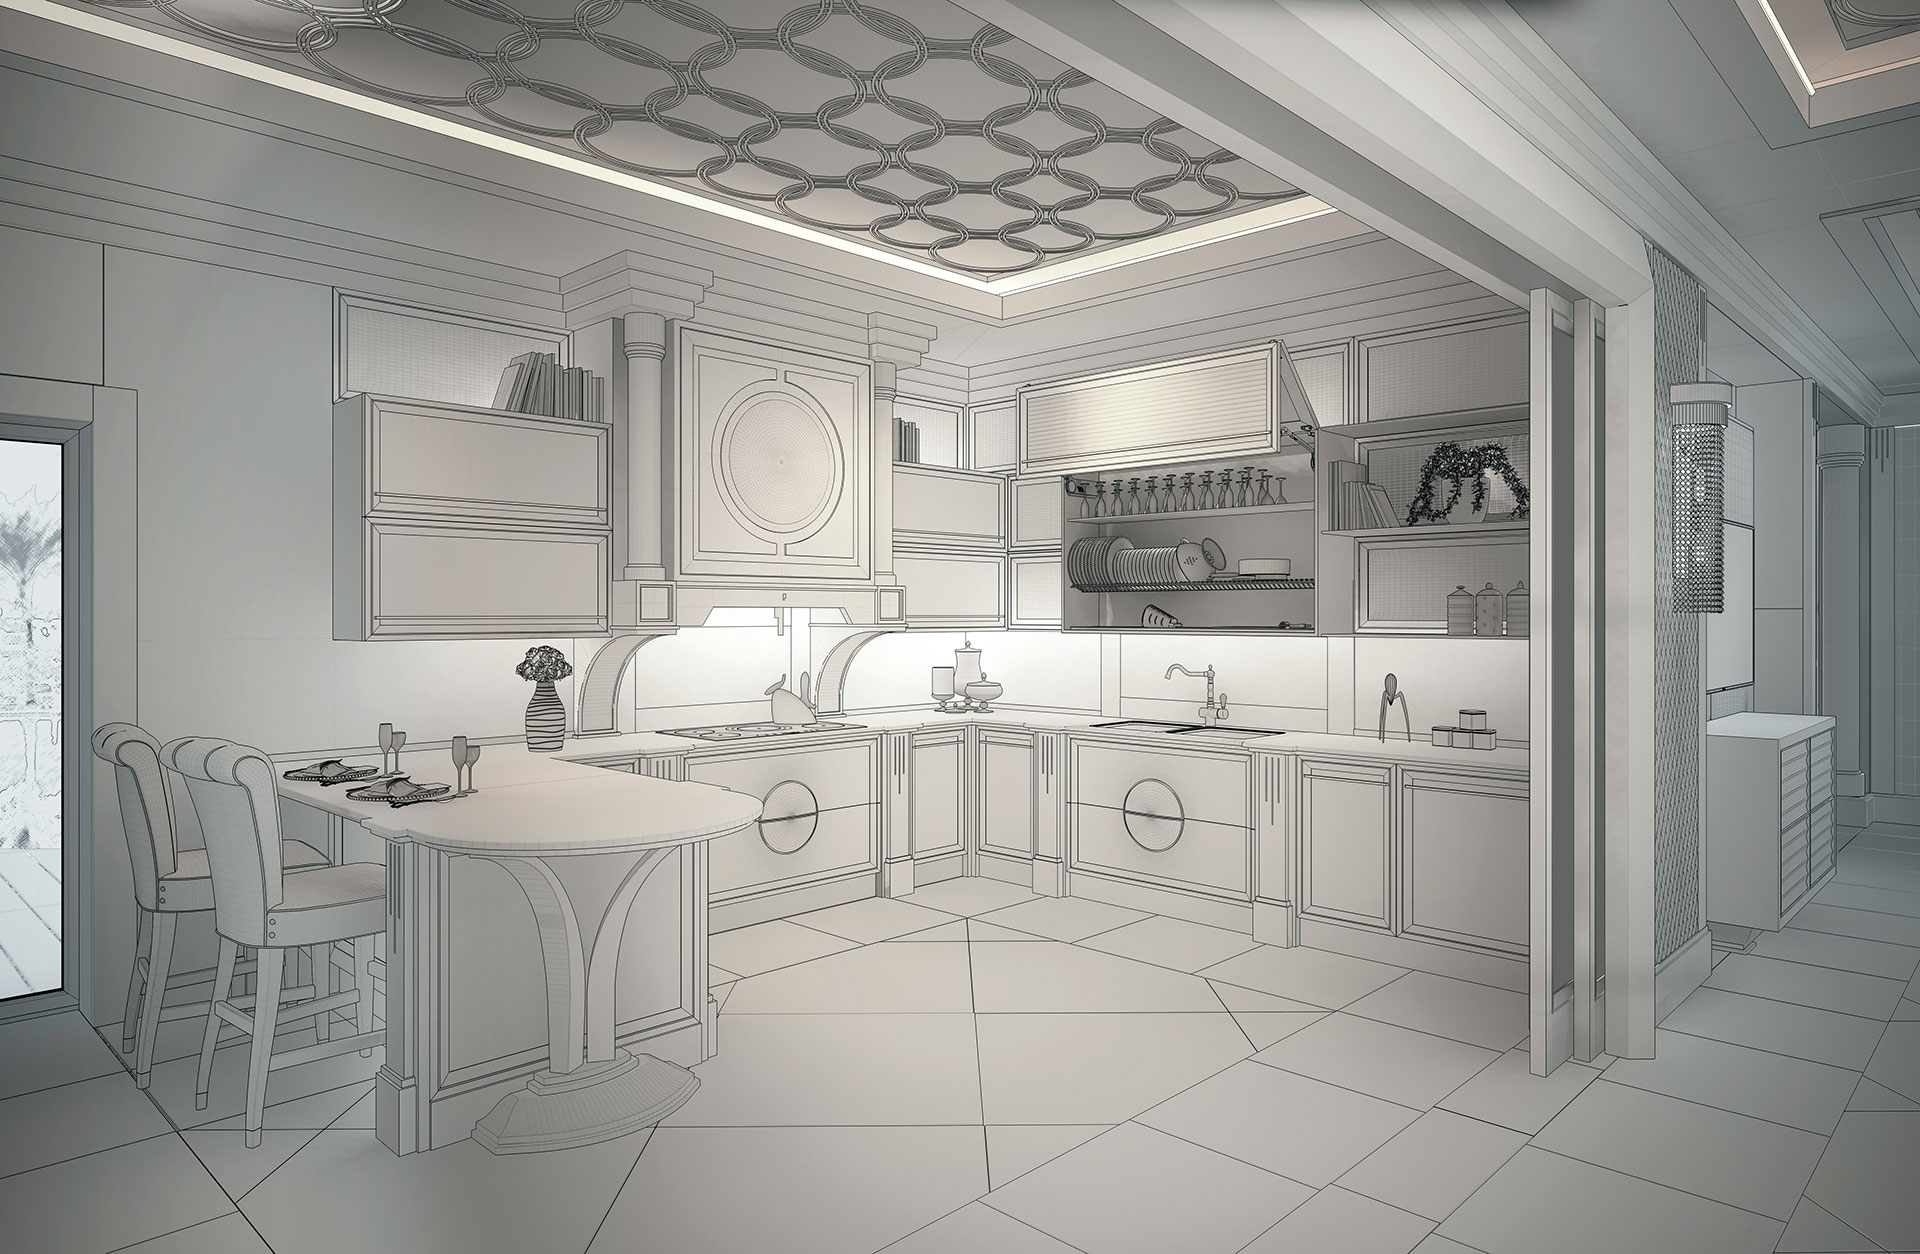 Faoma Globle design of the kitchen